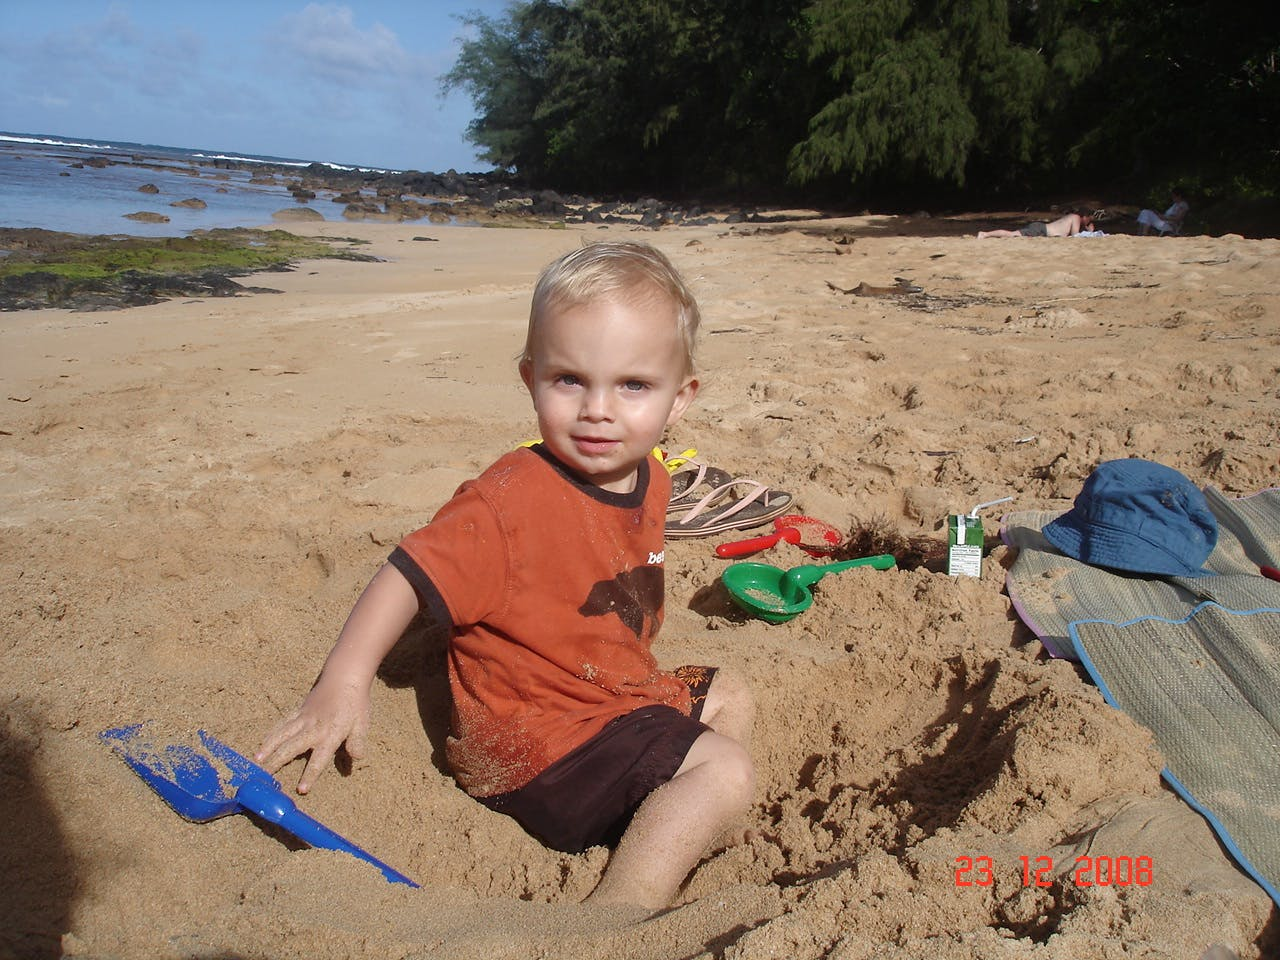 Cole digging up plastic in Hawaii